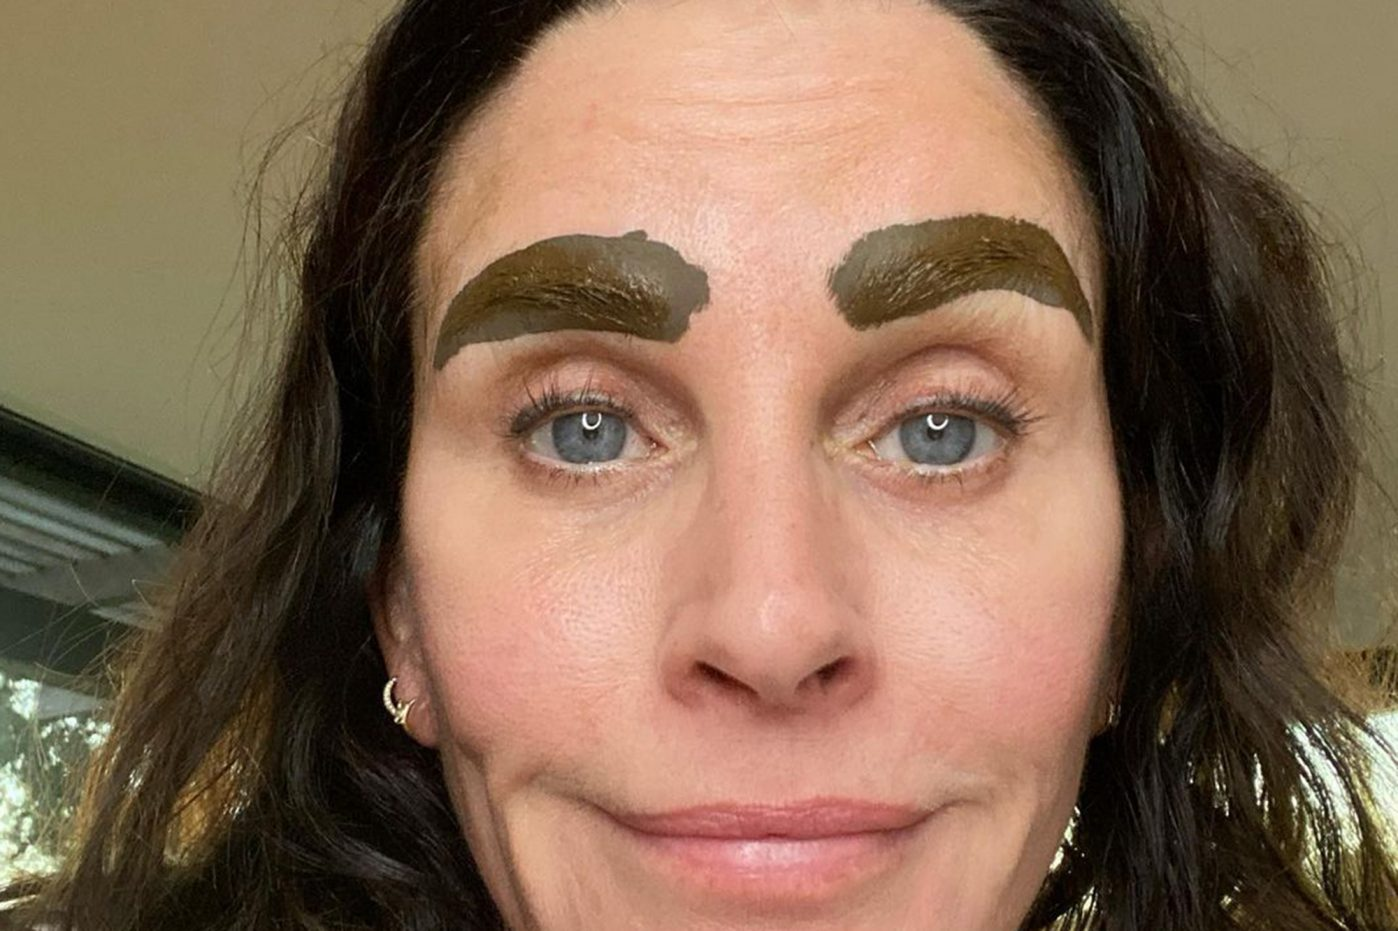 Courtney cox - micro-bladed- eyebrows-brows-beauty-friends